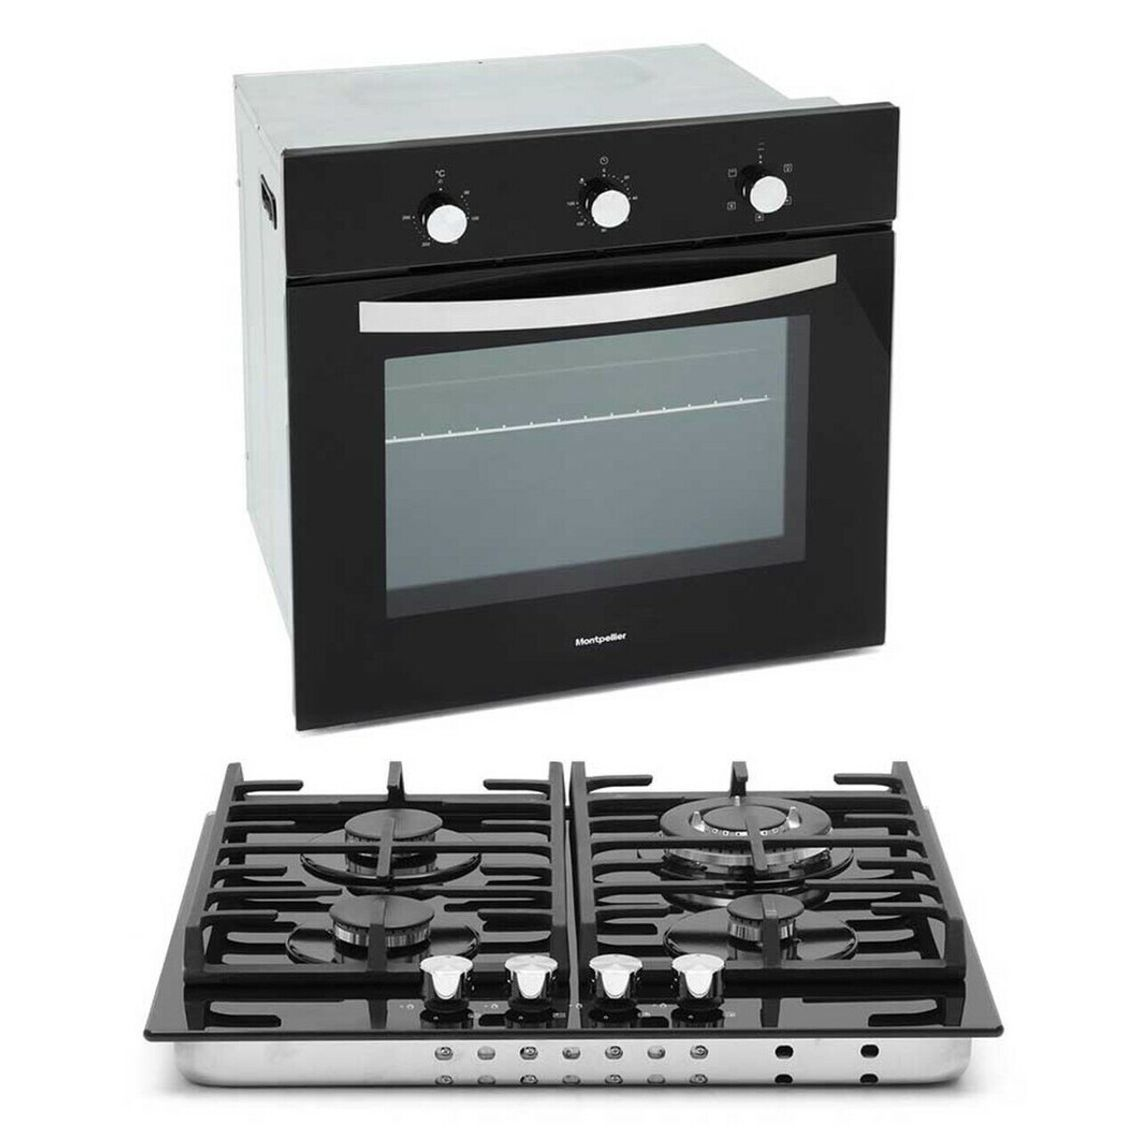 MONTPELLIER SFGP12 Built-In Single Electric Oven & Gas Hob Pack Black, STRABANE WHOLESALE LTD, Strabane, Co. Tyrone. 02871382374